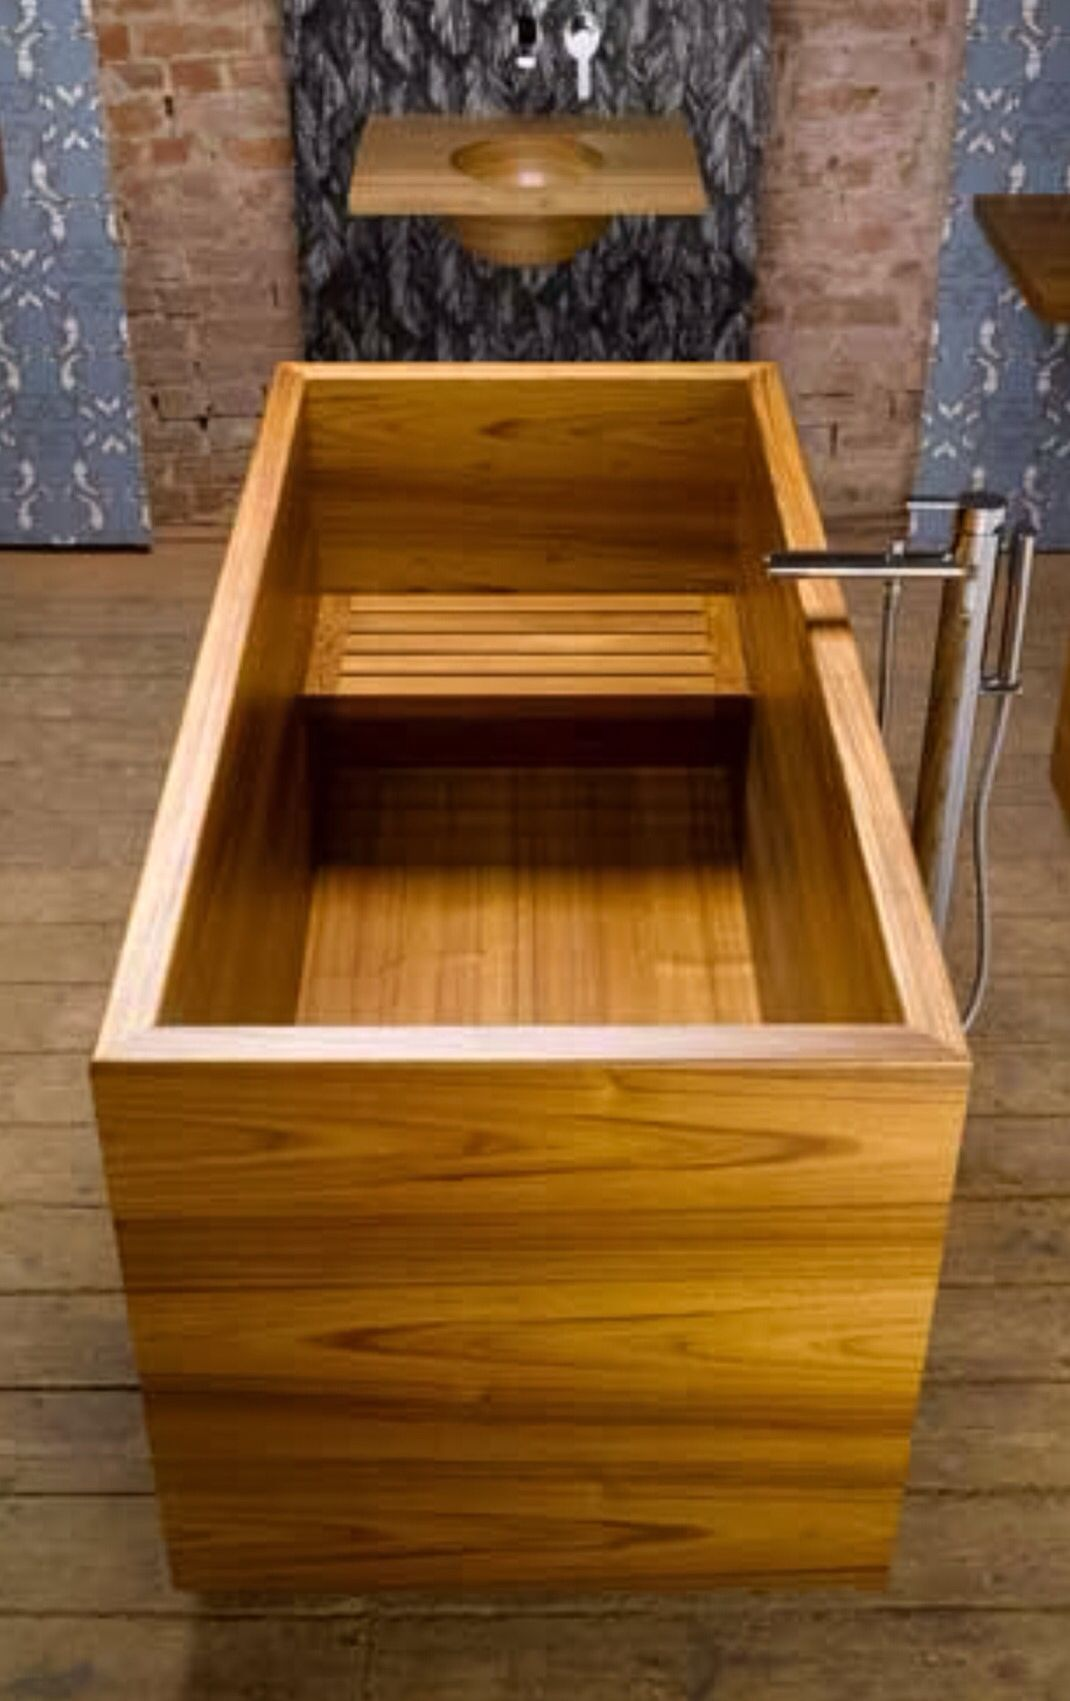 Japanese ofuro style bath in teak by William Garvey | Interiore in ...